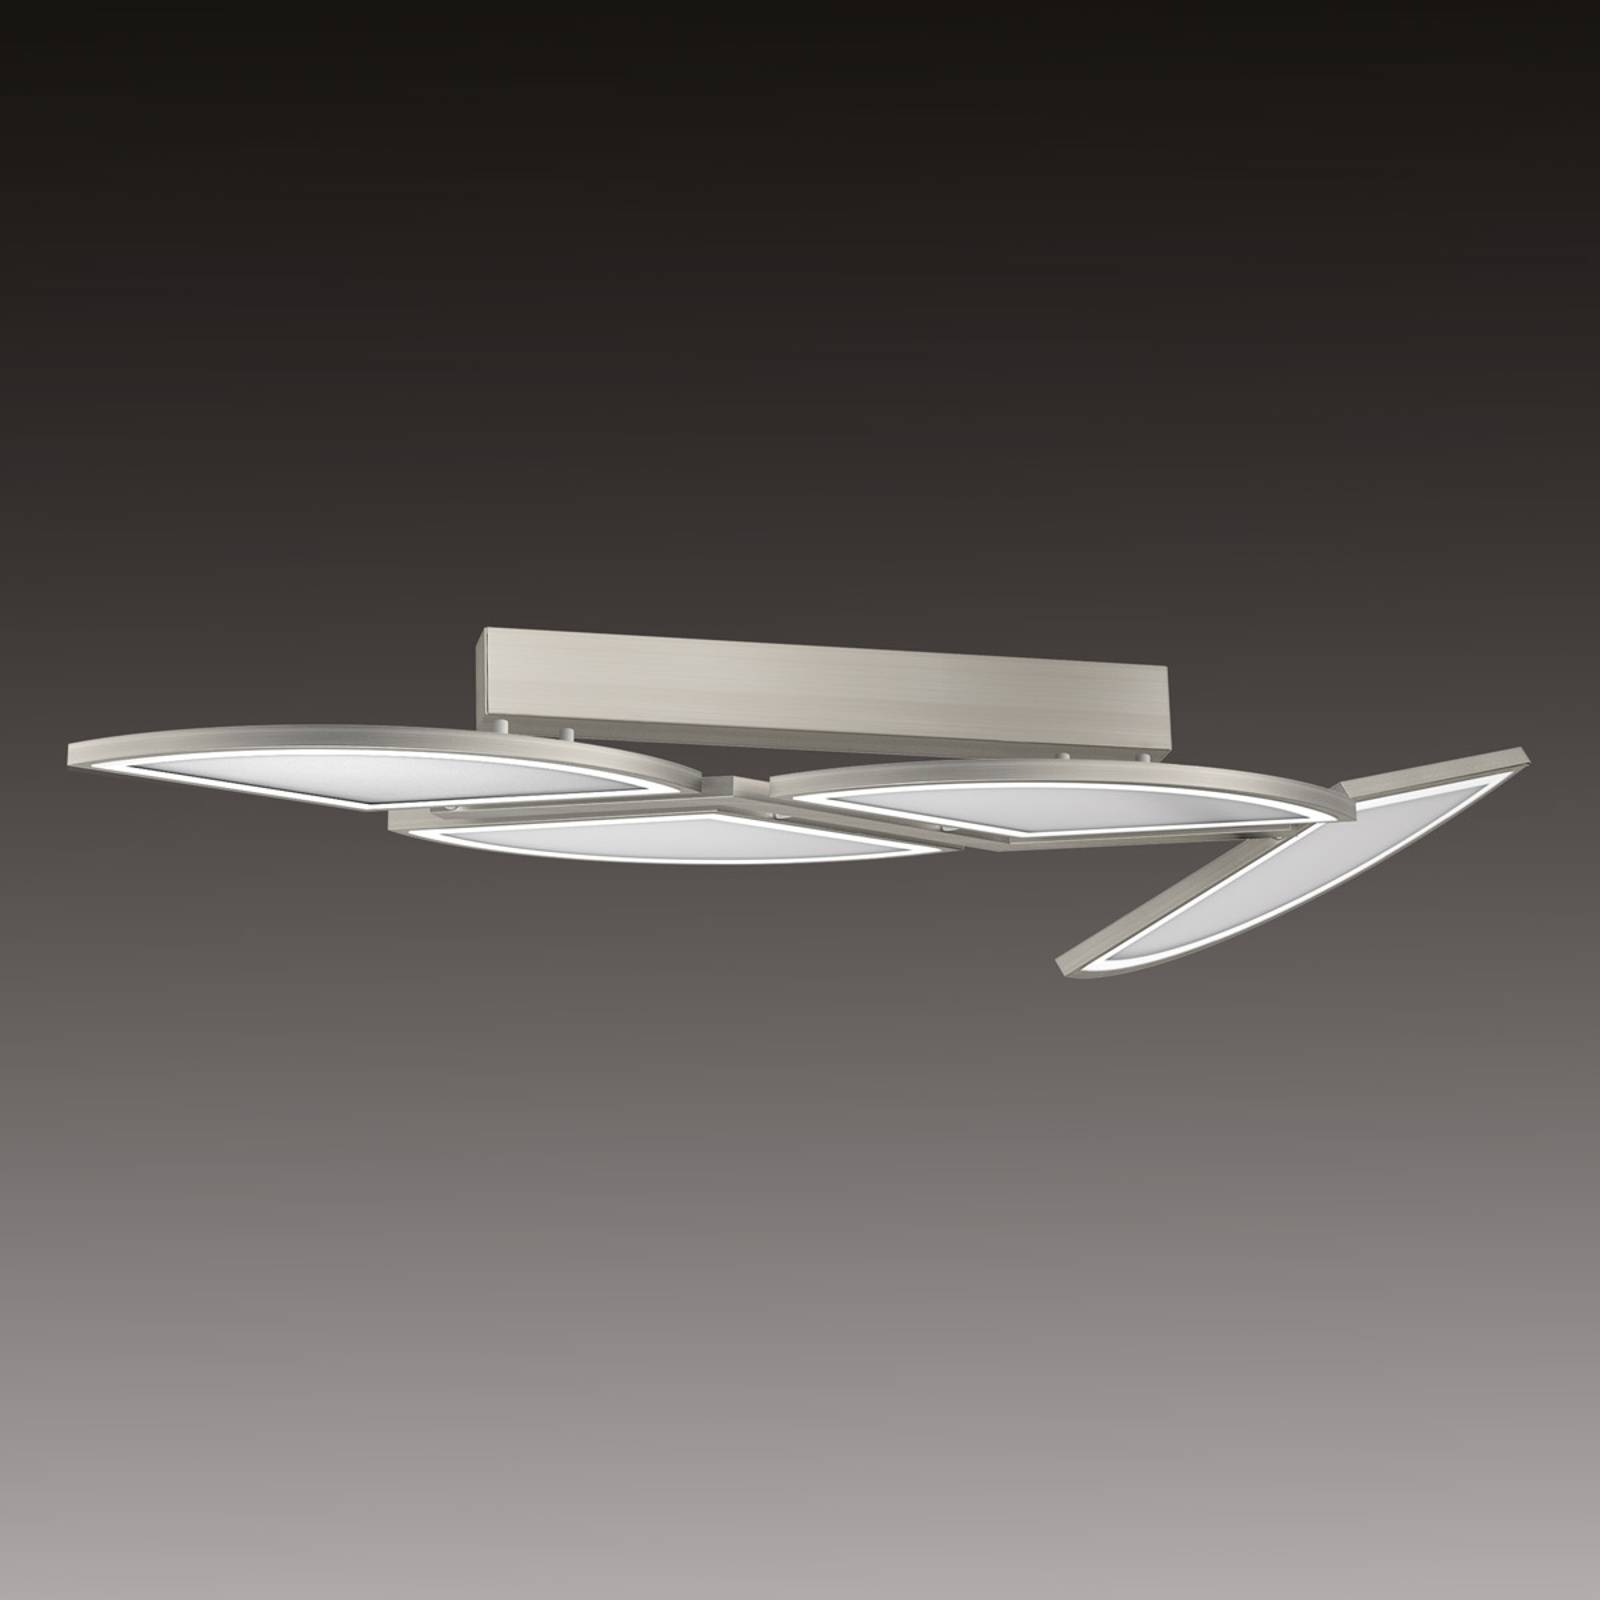 Movil - LED ceiling light with 4 light segments from Evotec